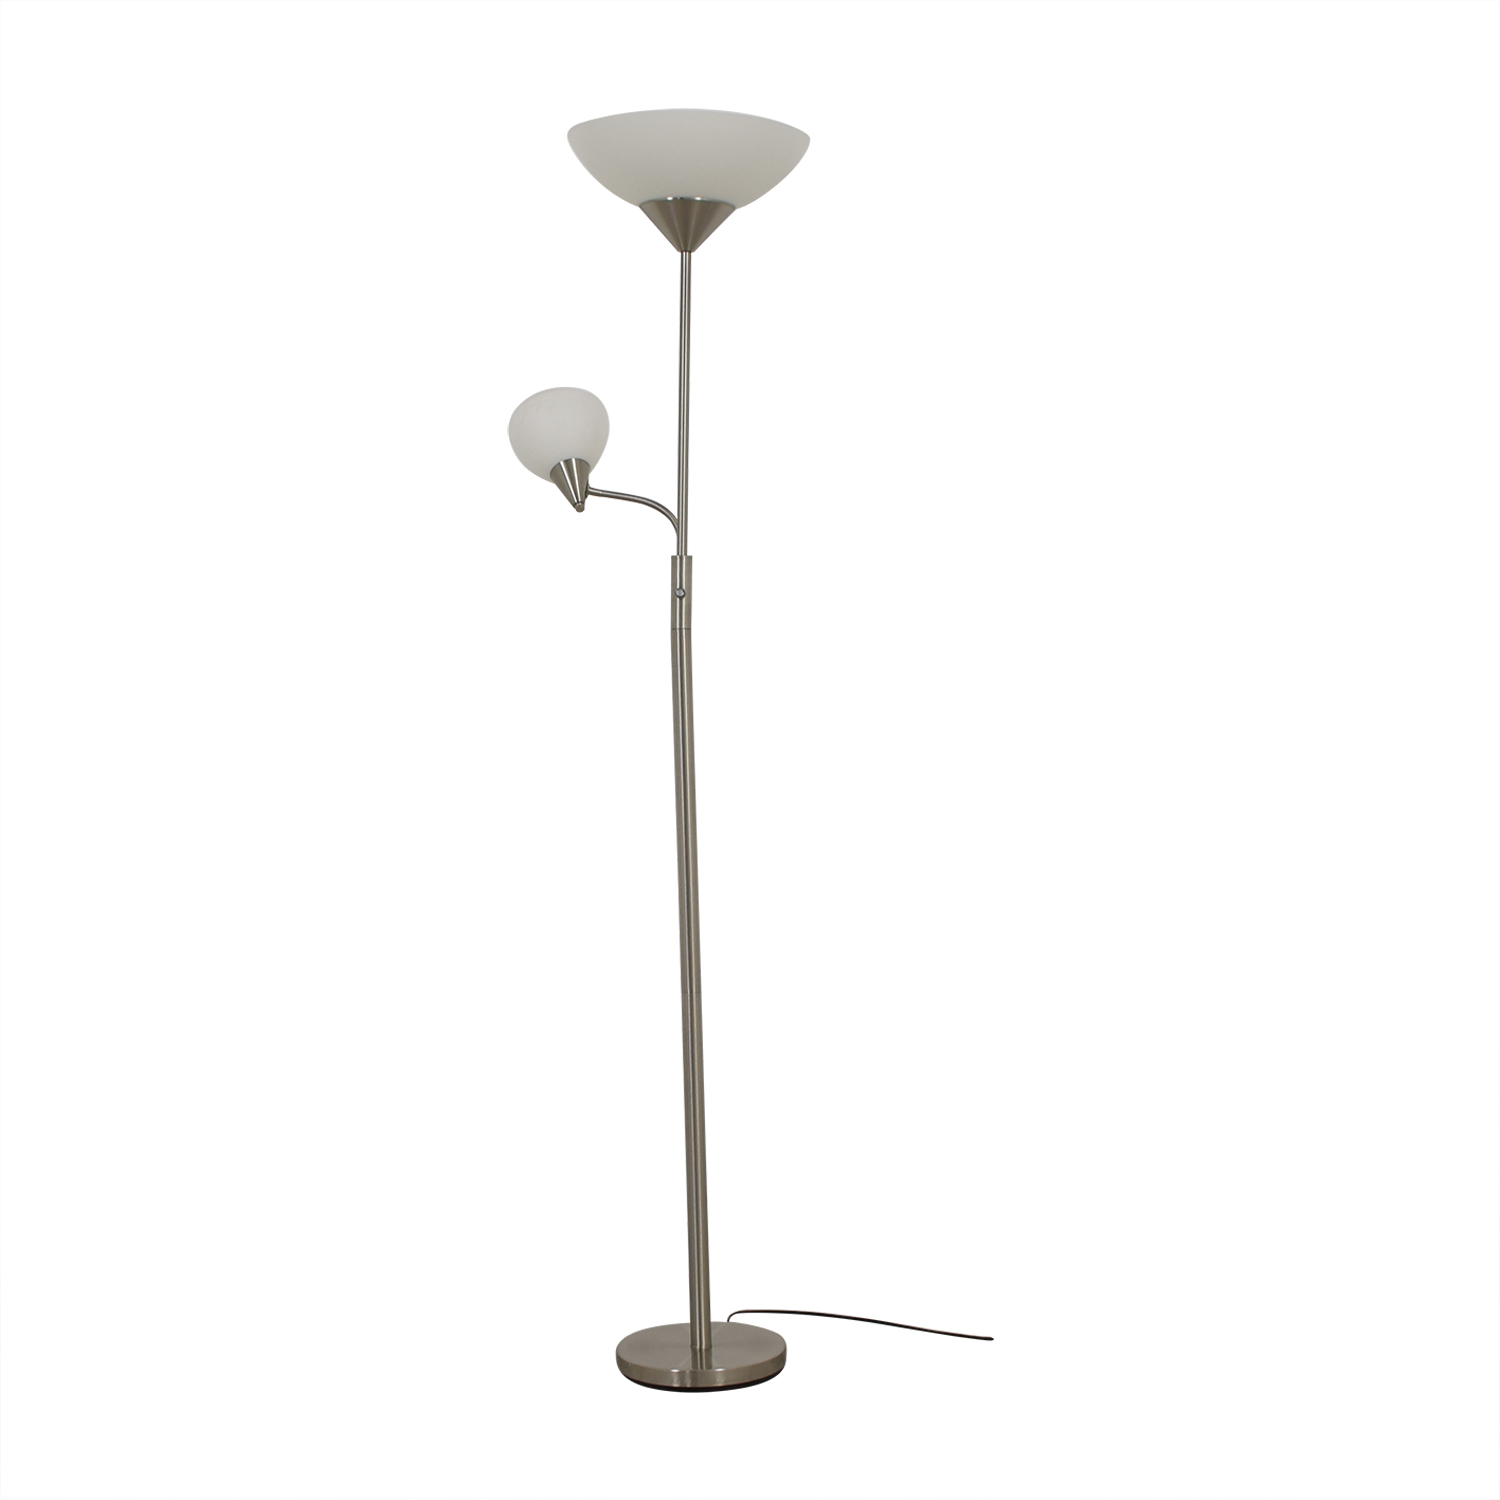 49 Off Floor Lamp With Adjustable Reading Lamp Decor